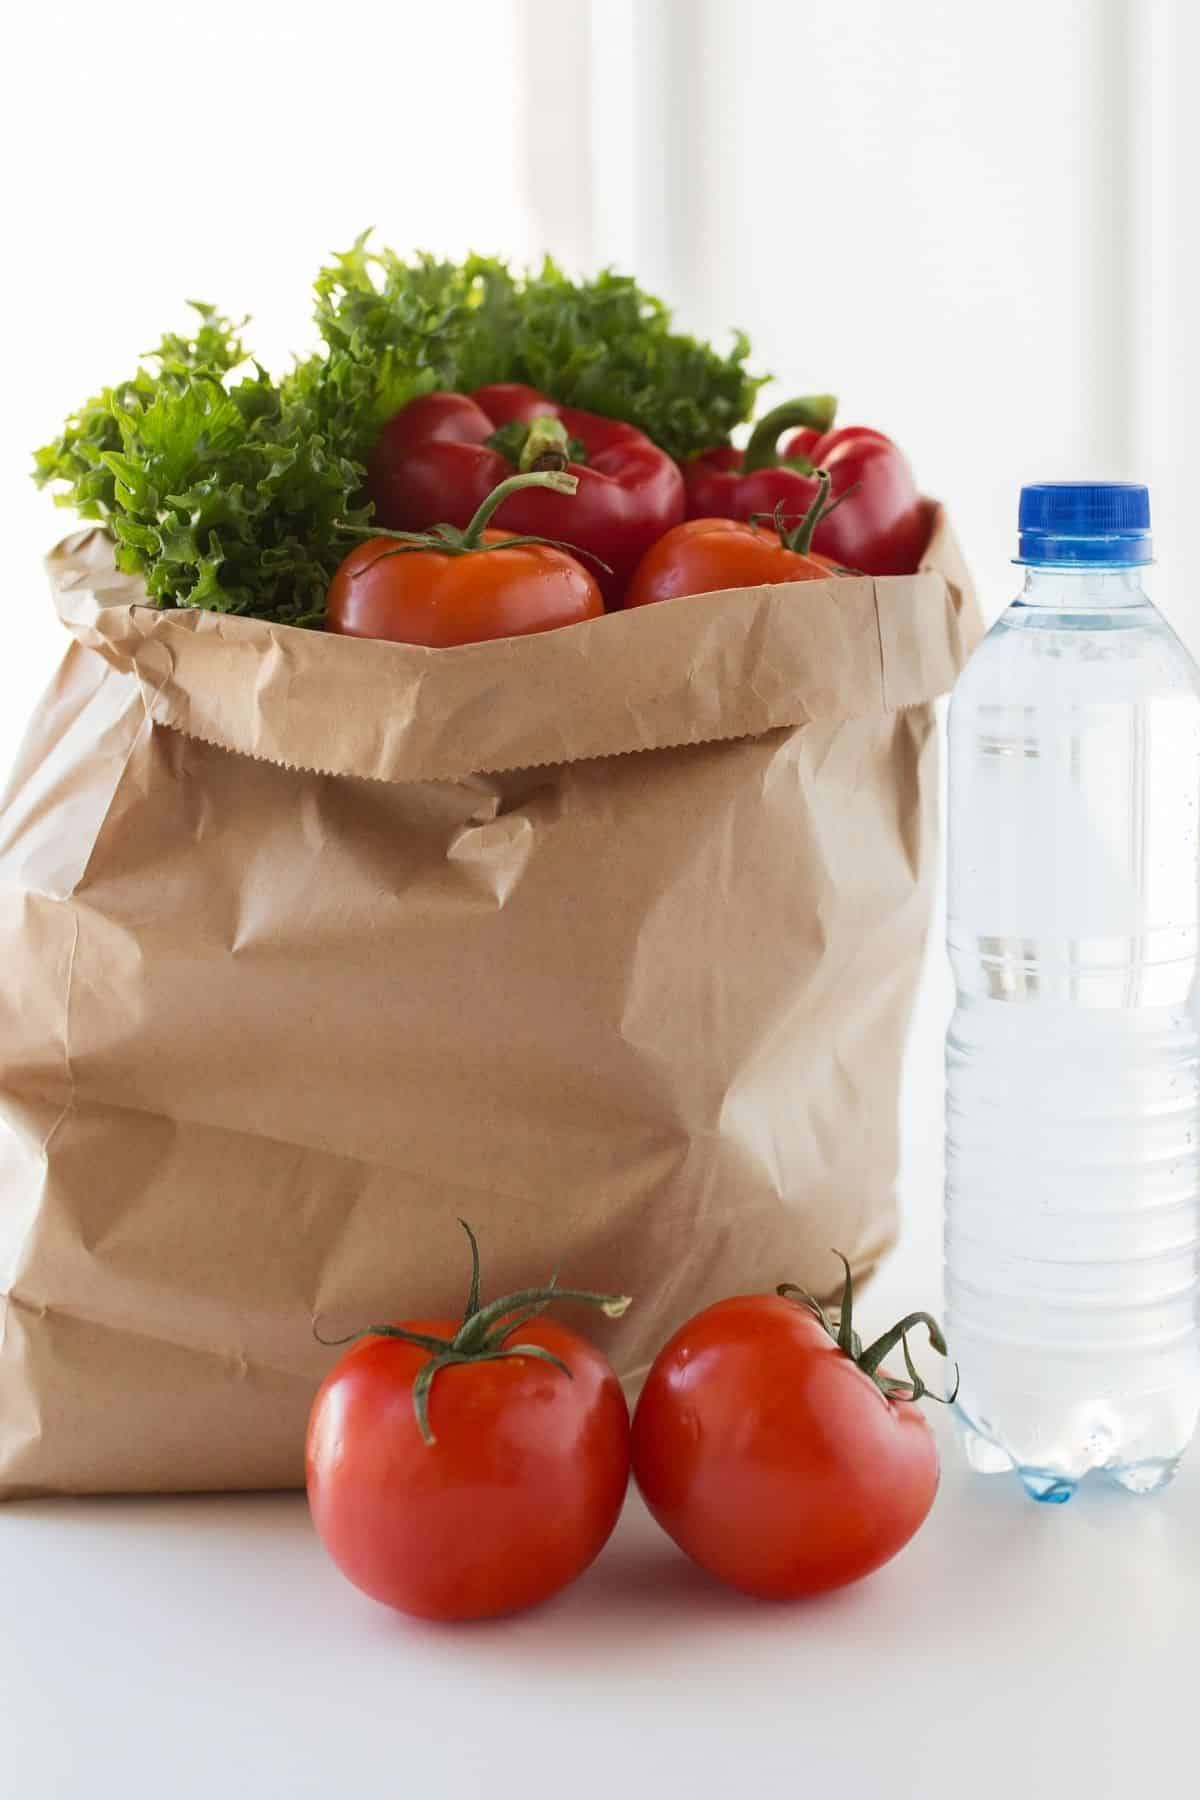 vegetables in grocery bag on a countertop with a bottle of water